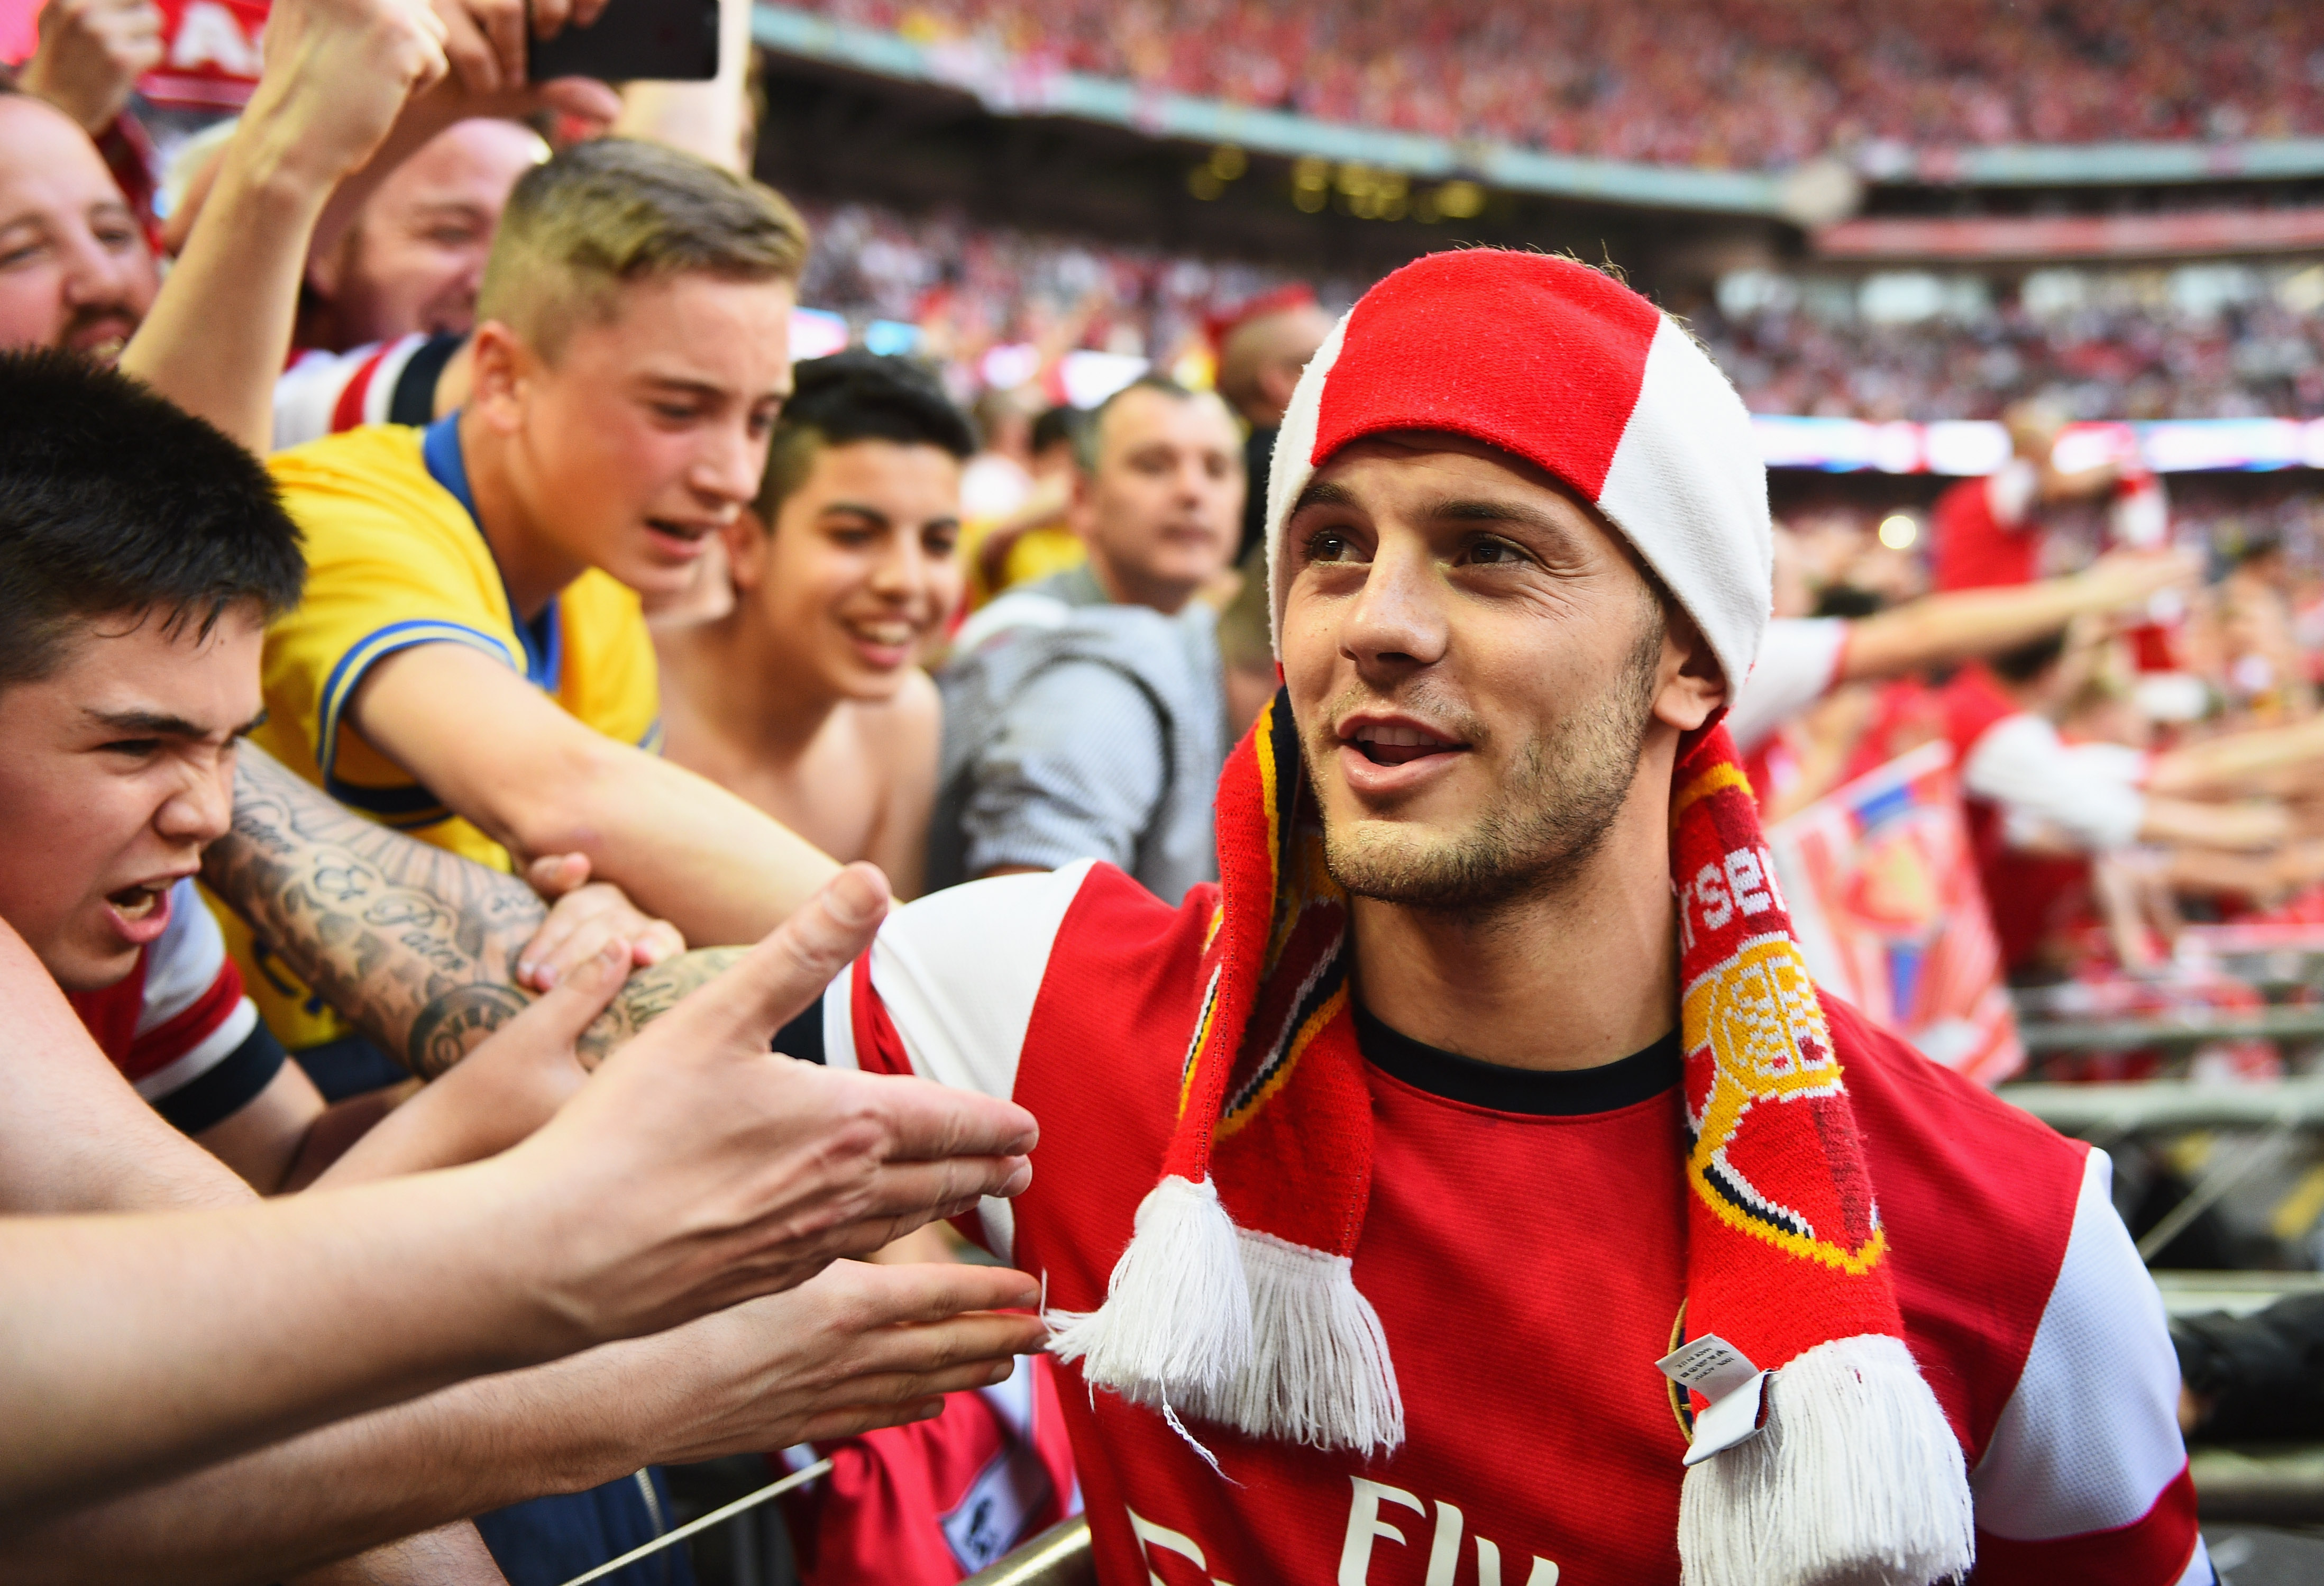 LONDON, ENGLAND - MAY 17:  Jack Wilshere of Arsenal celebrates victory with fans after the FA Cup with Budweiser Final match between Arsenal and Hull City at Wembley Stadium on May 17, 2014 in London, England.  (Photo by Shaun Botterill/Getty Images)